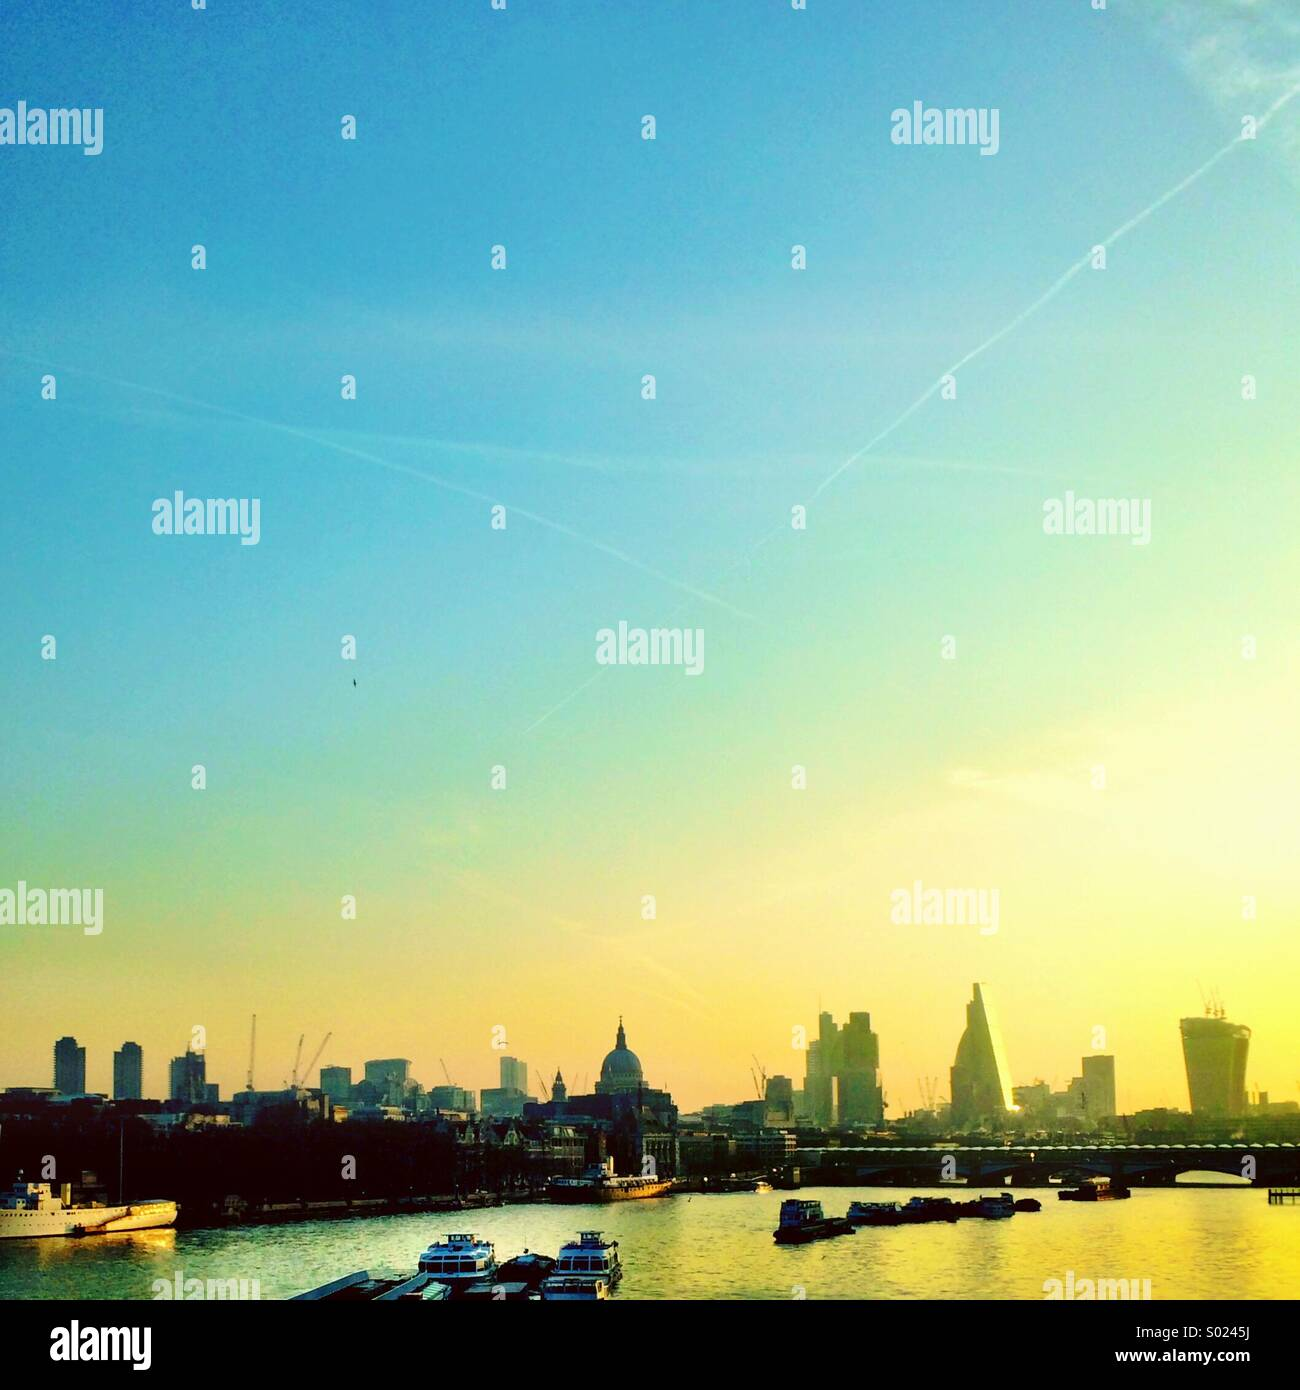 Waterloo sunrise London - Stock Image